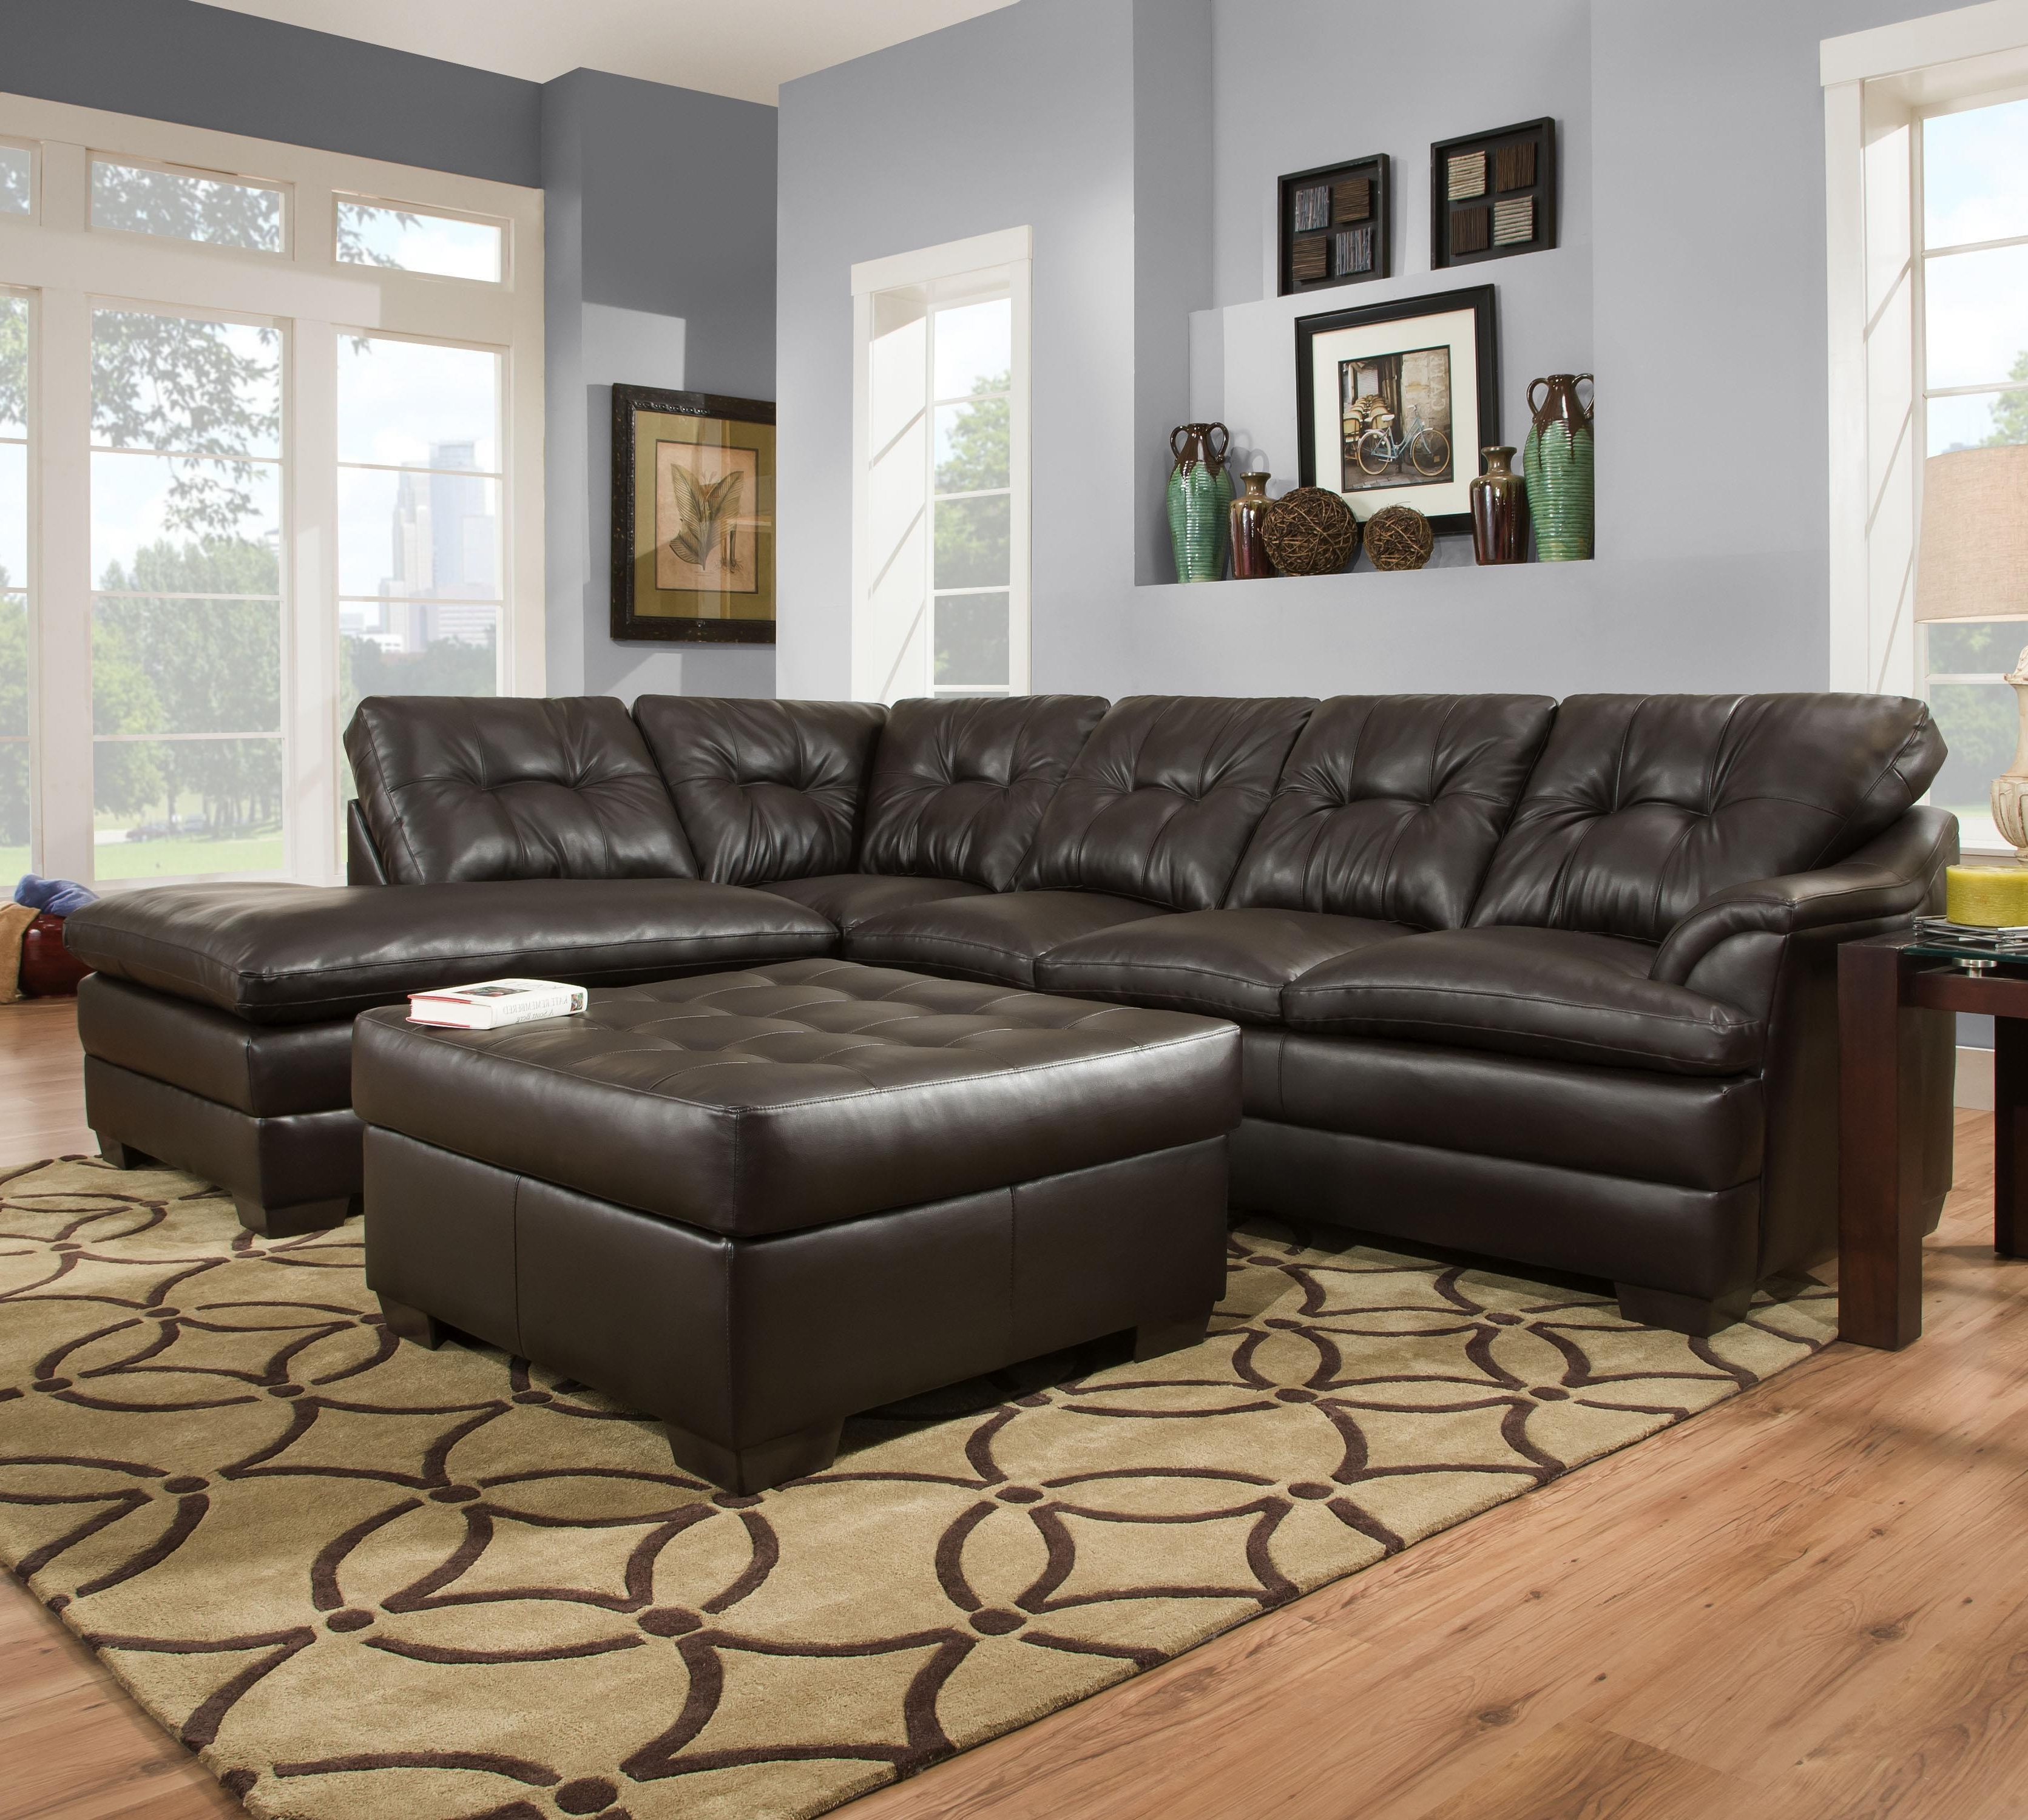 Jackson Tn Sectional Sofas Pertaining To Most Up To Date Furniture : Royal Furniture Jackson Tn Fresh American Furniture (View 9 of 20)